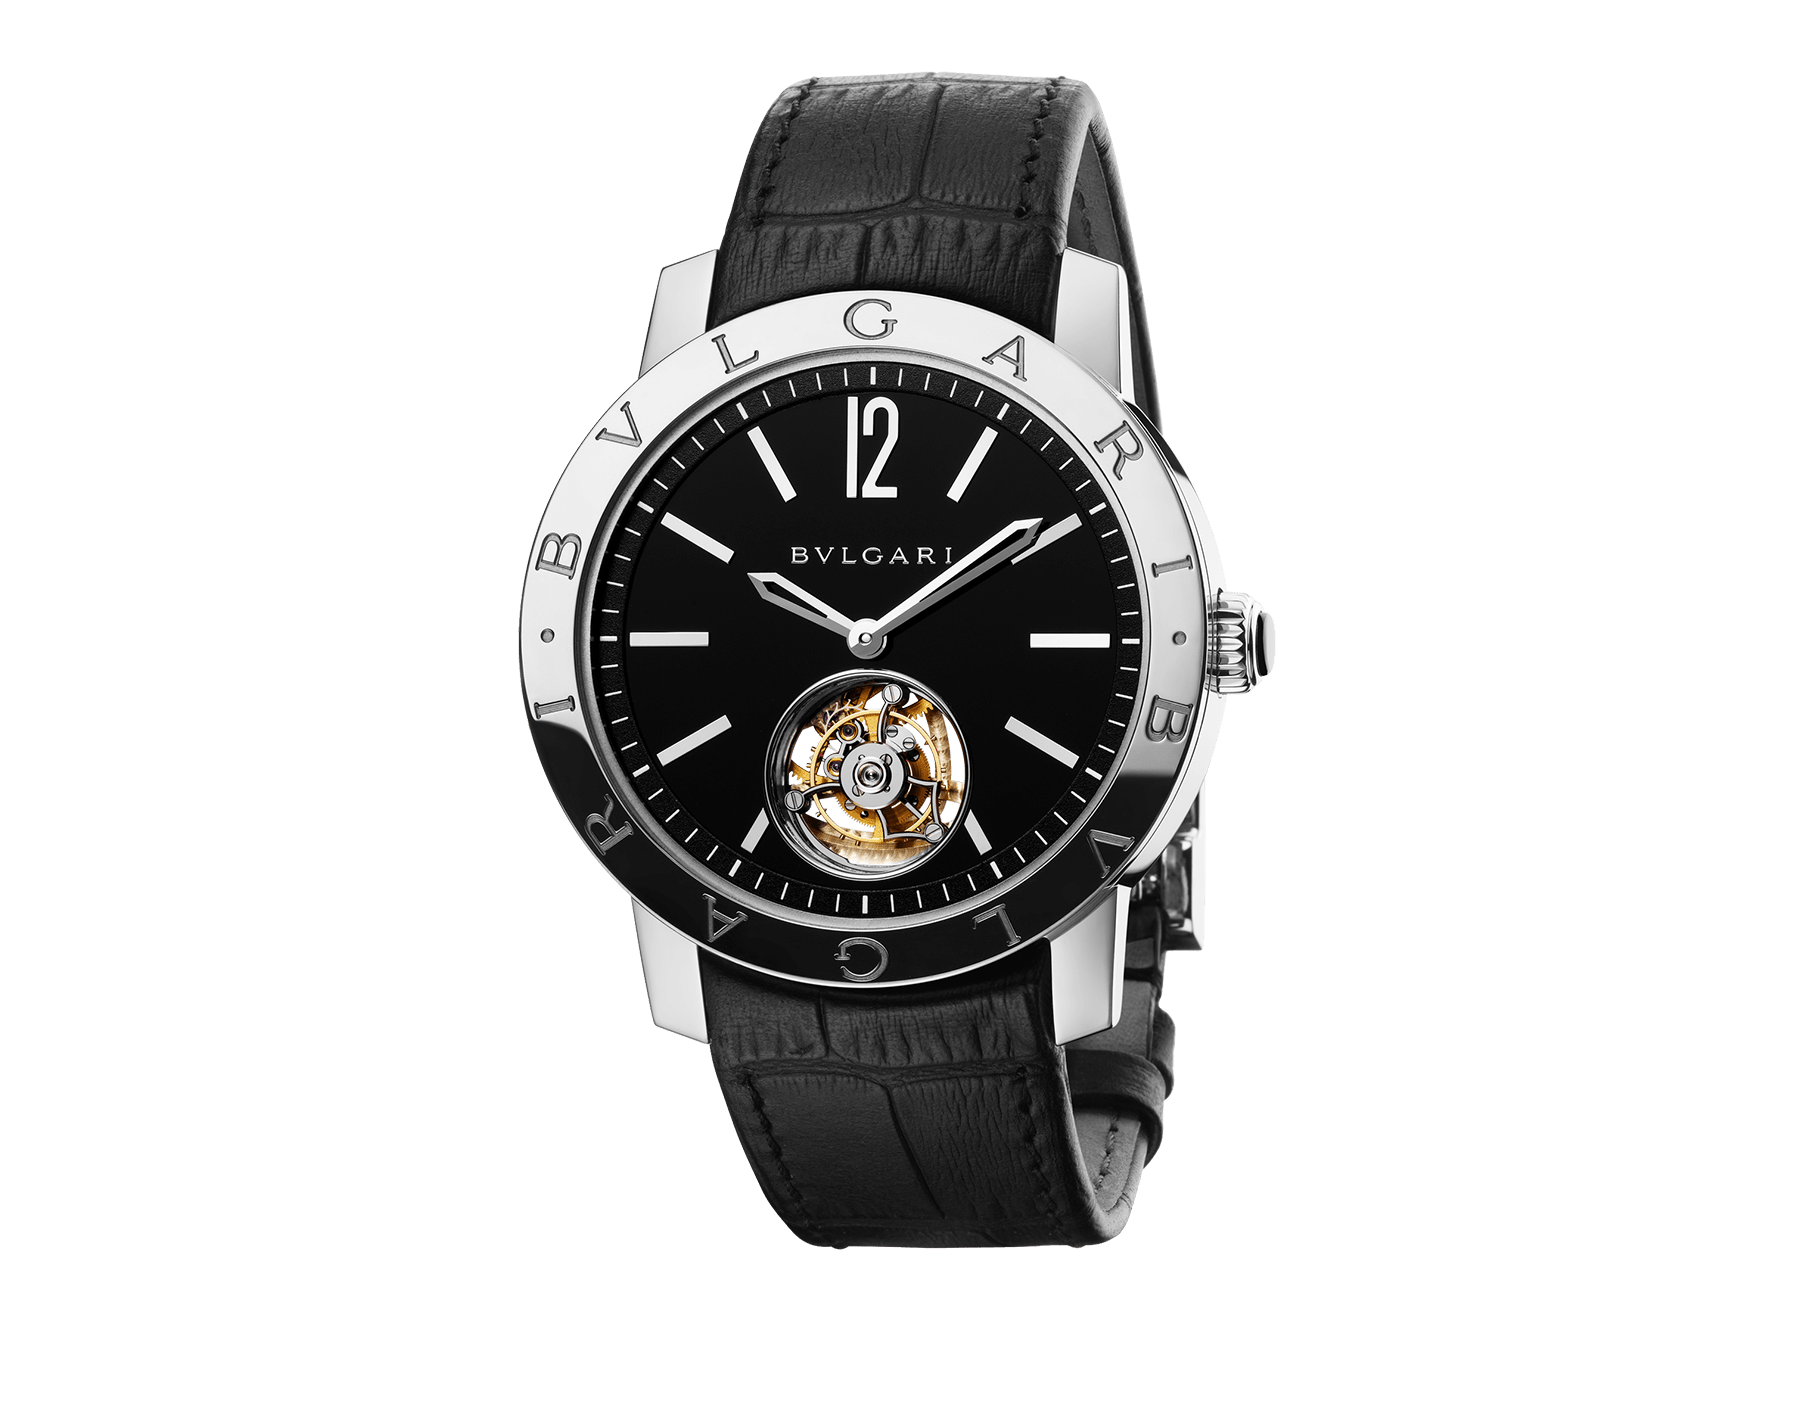 BVLGARI BVLGARI Tourbillon watch with mechanical manufacture movement, automatic winding, see-through tourbillon and sapphire bridge. 18 kt white gold case, black dial and black alligator bracelet 102212 image 1